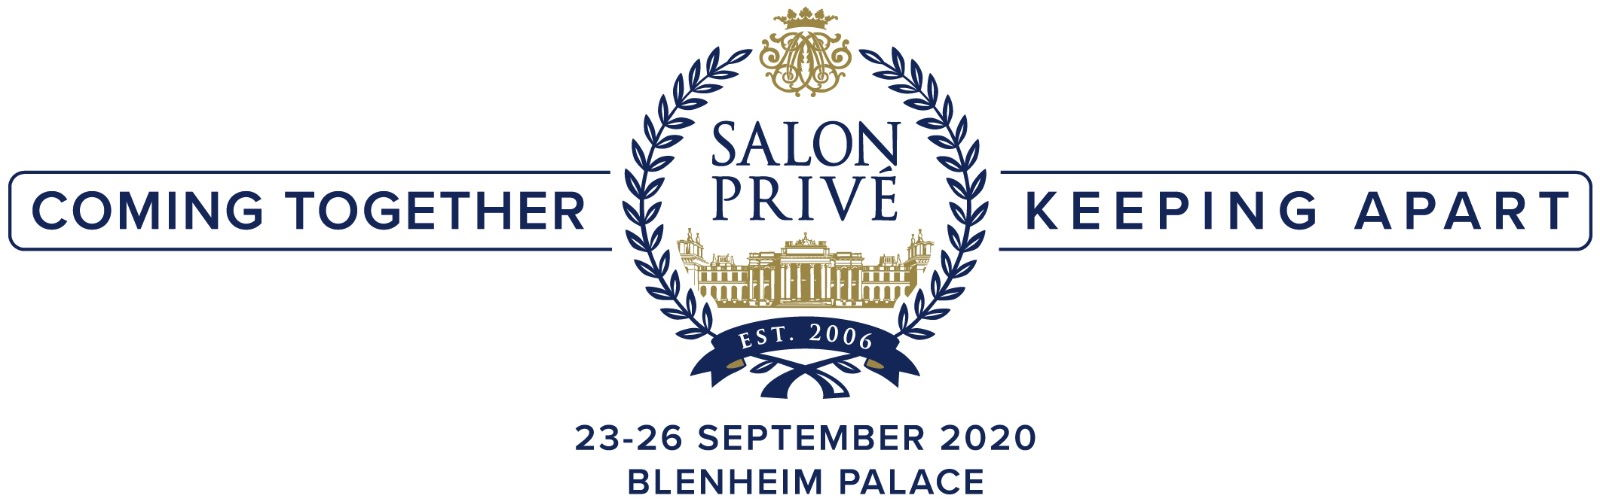 Salon-prive